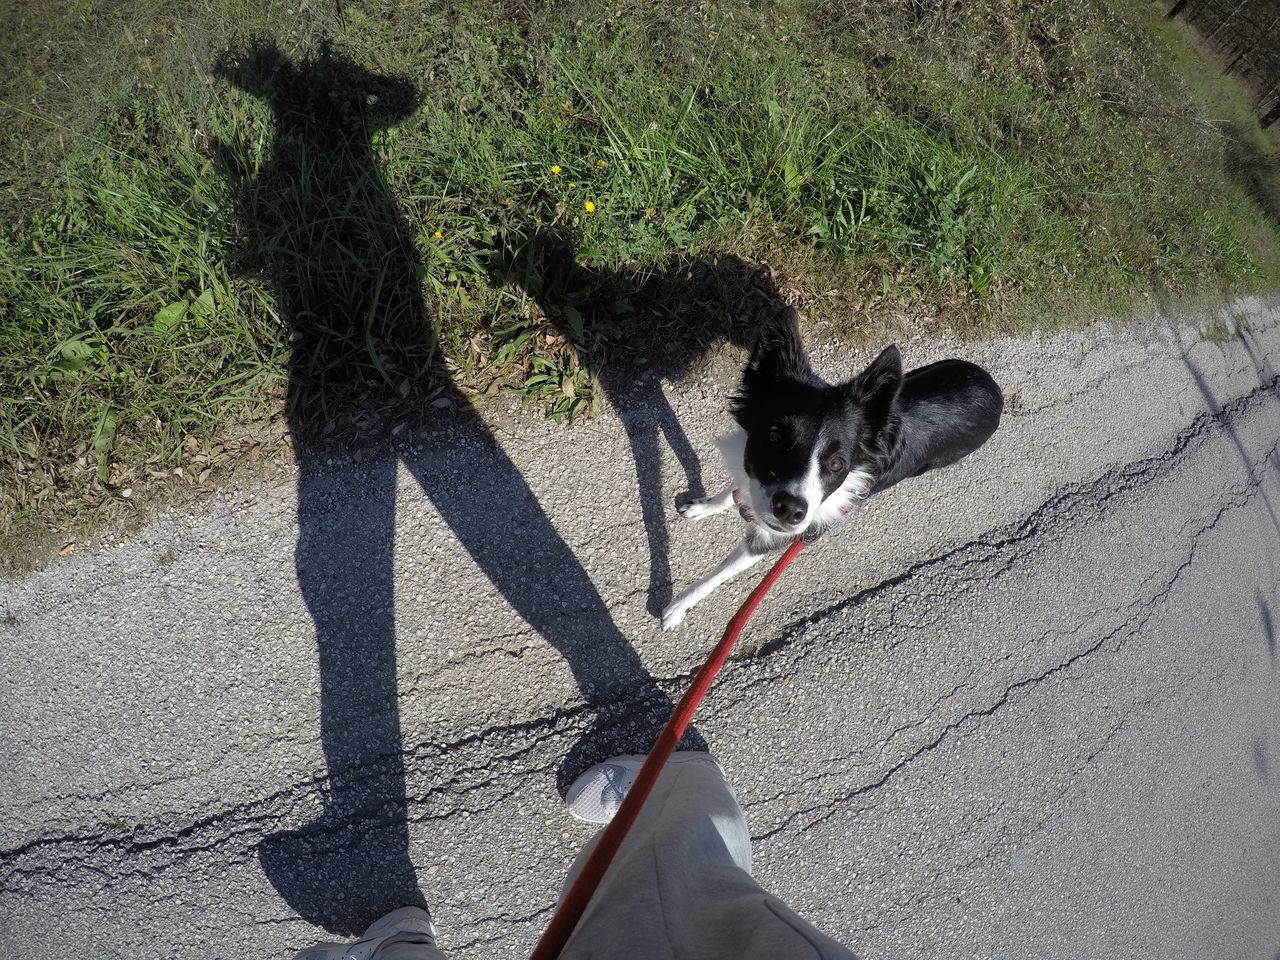 domestic animals, pets, mammal, dog, shadow, one animal, outdoors, walking, day, sunlight, real people, one person, men, nature, people